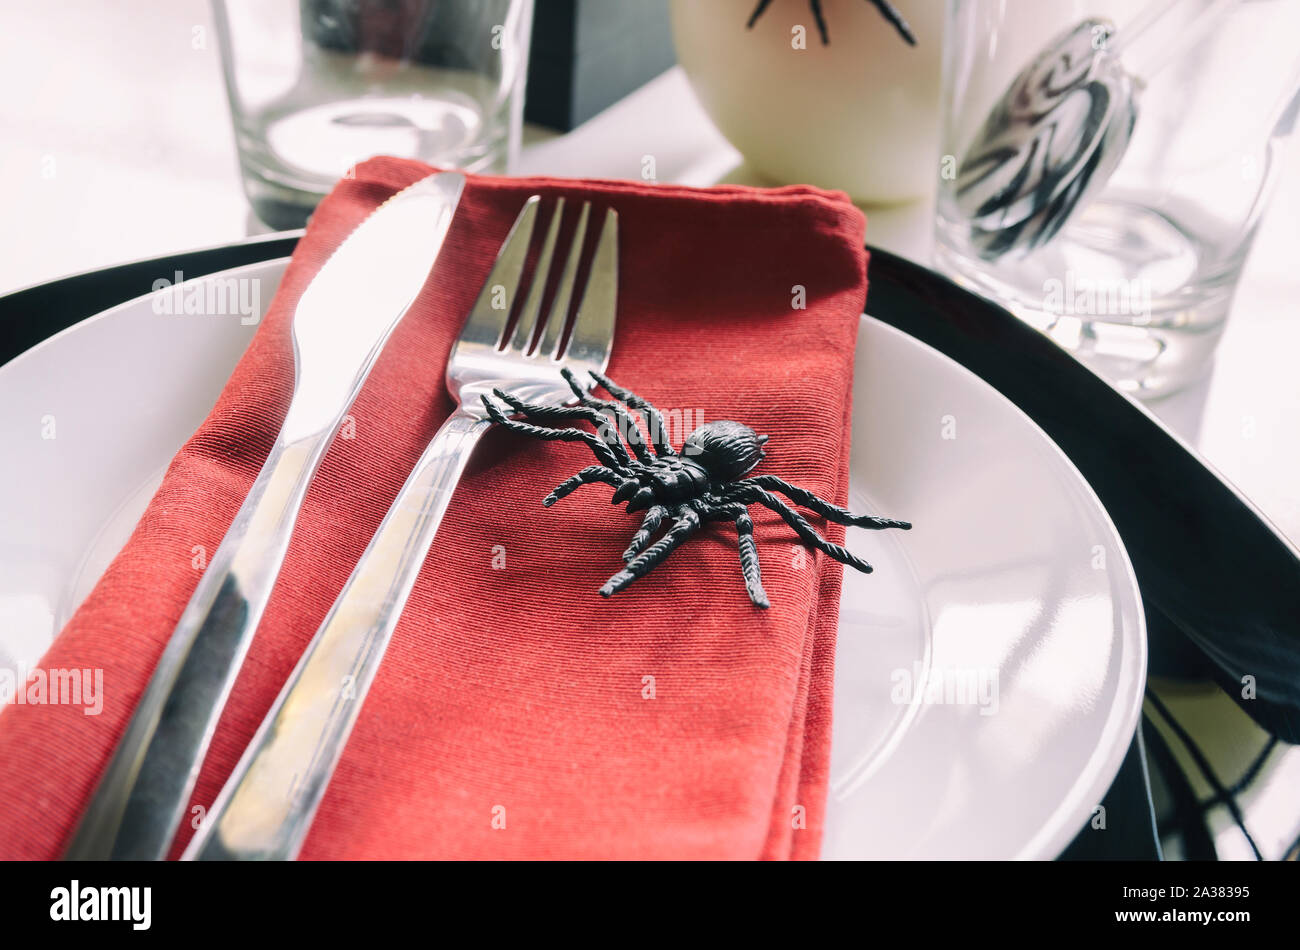 Close Up Of Halloween Table Settings In Red Black Colors With Typical Symbol Spider Halloween Party Concept Stock Photo Alamy